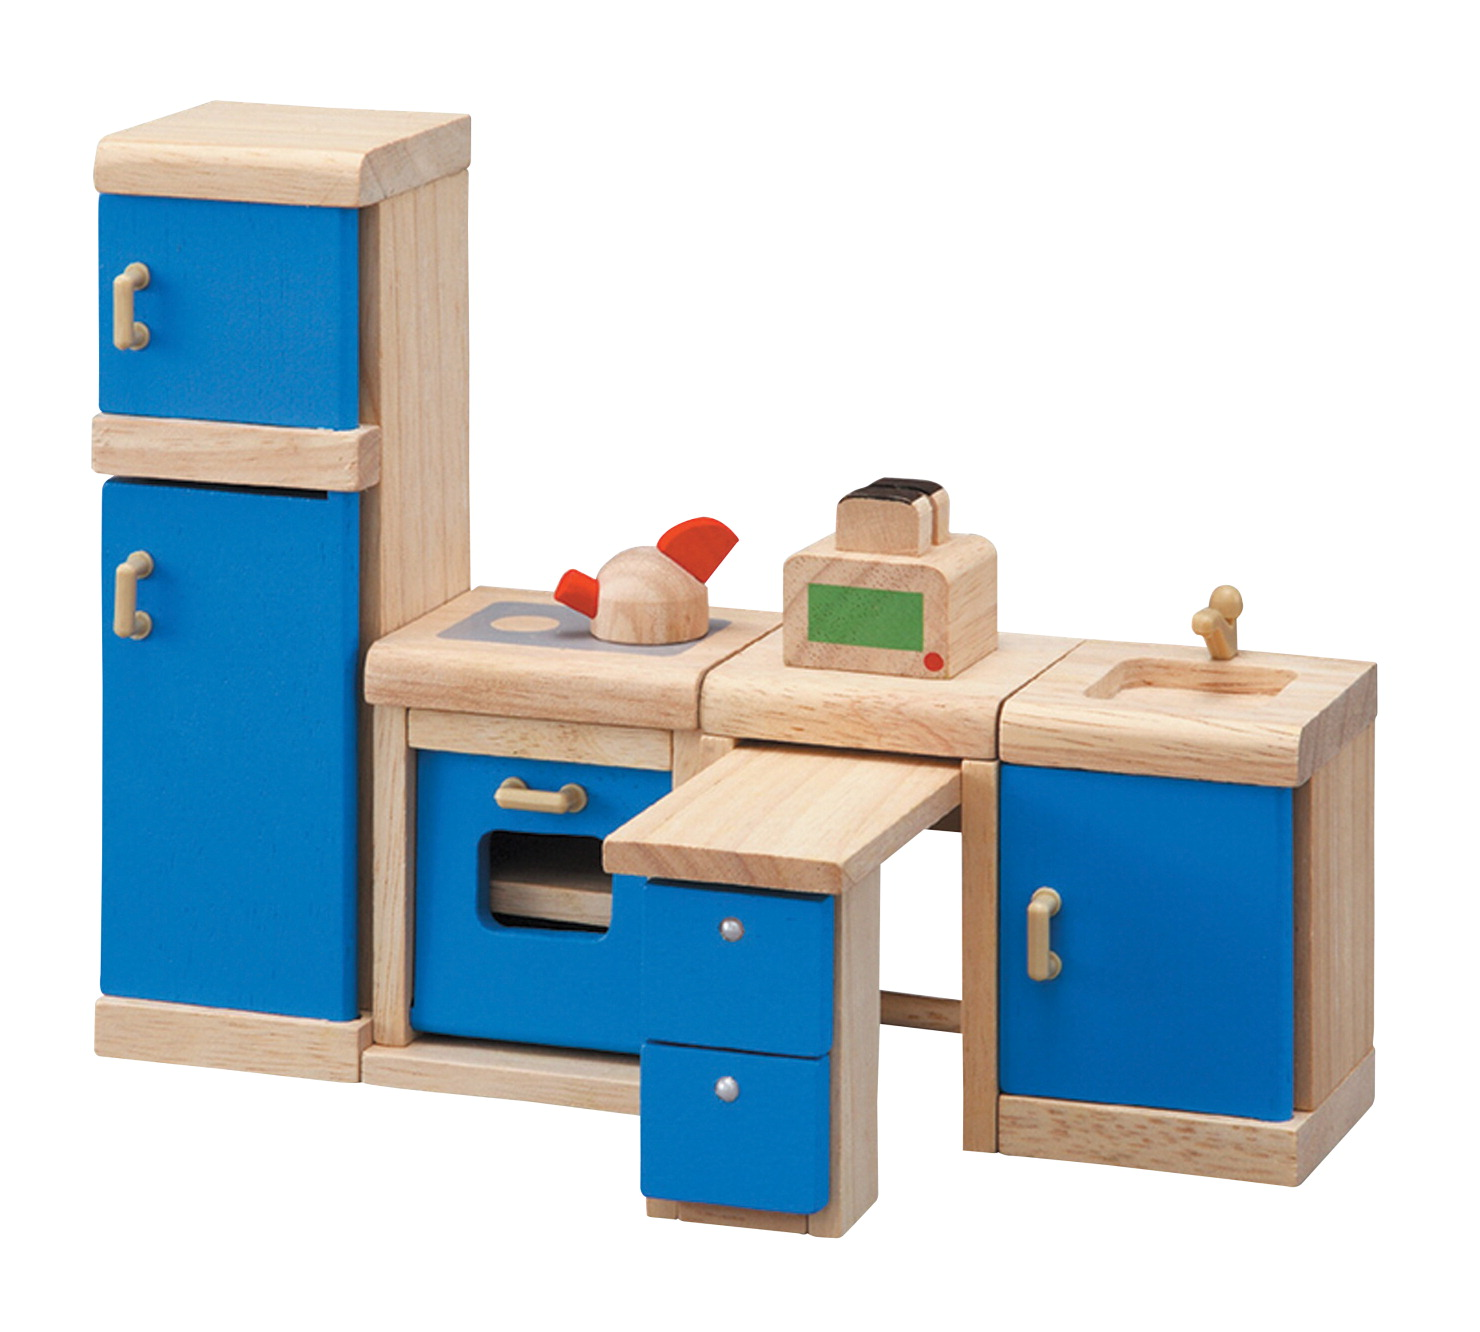 Details about plantoys dollhouse furniture kitchen set 6 pieces